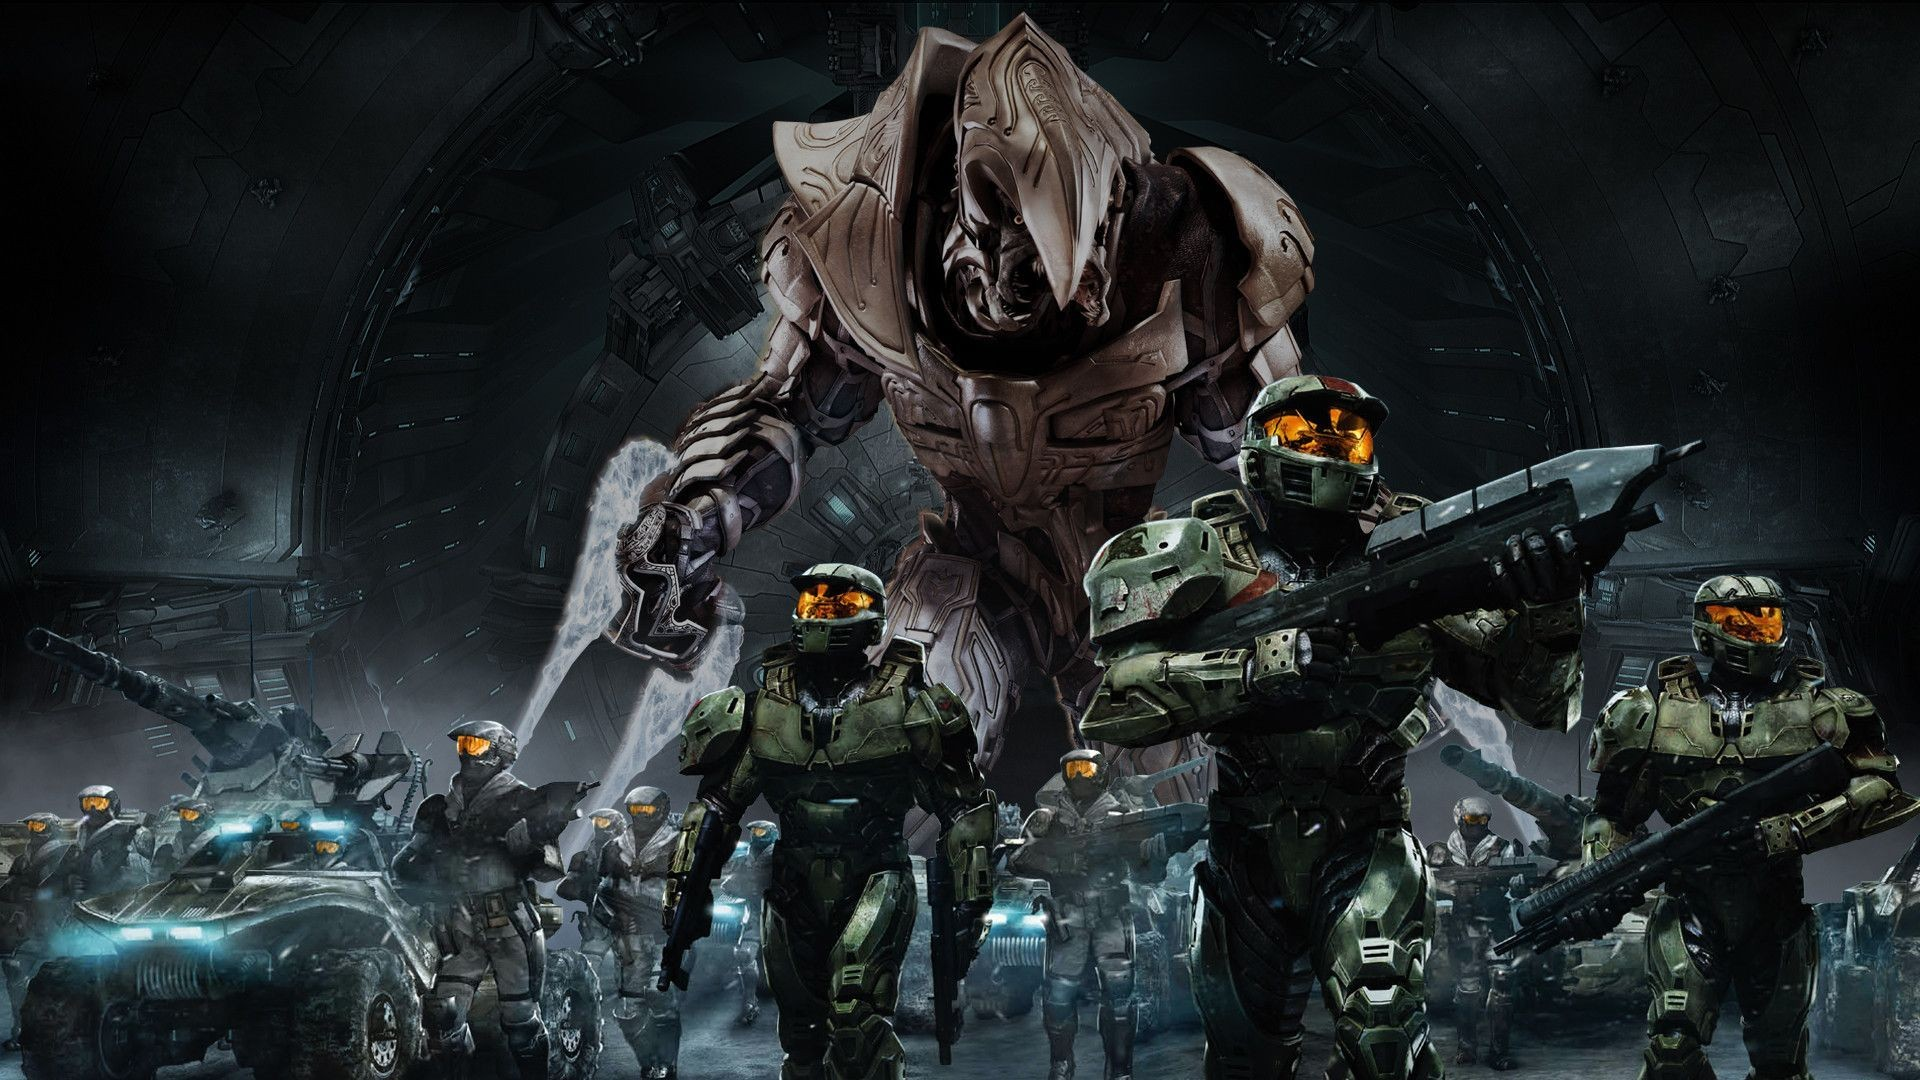 53 Halo Wallpapers Download Free Cool Backgrounds For Desktop